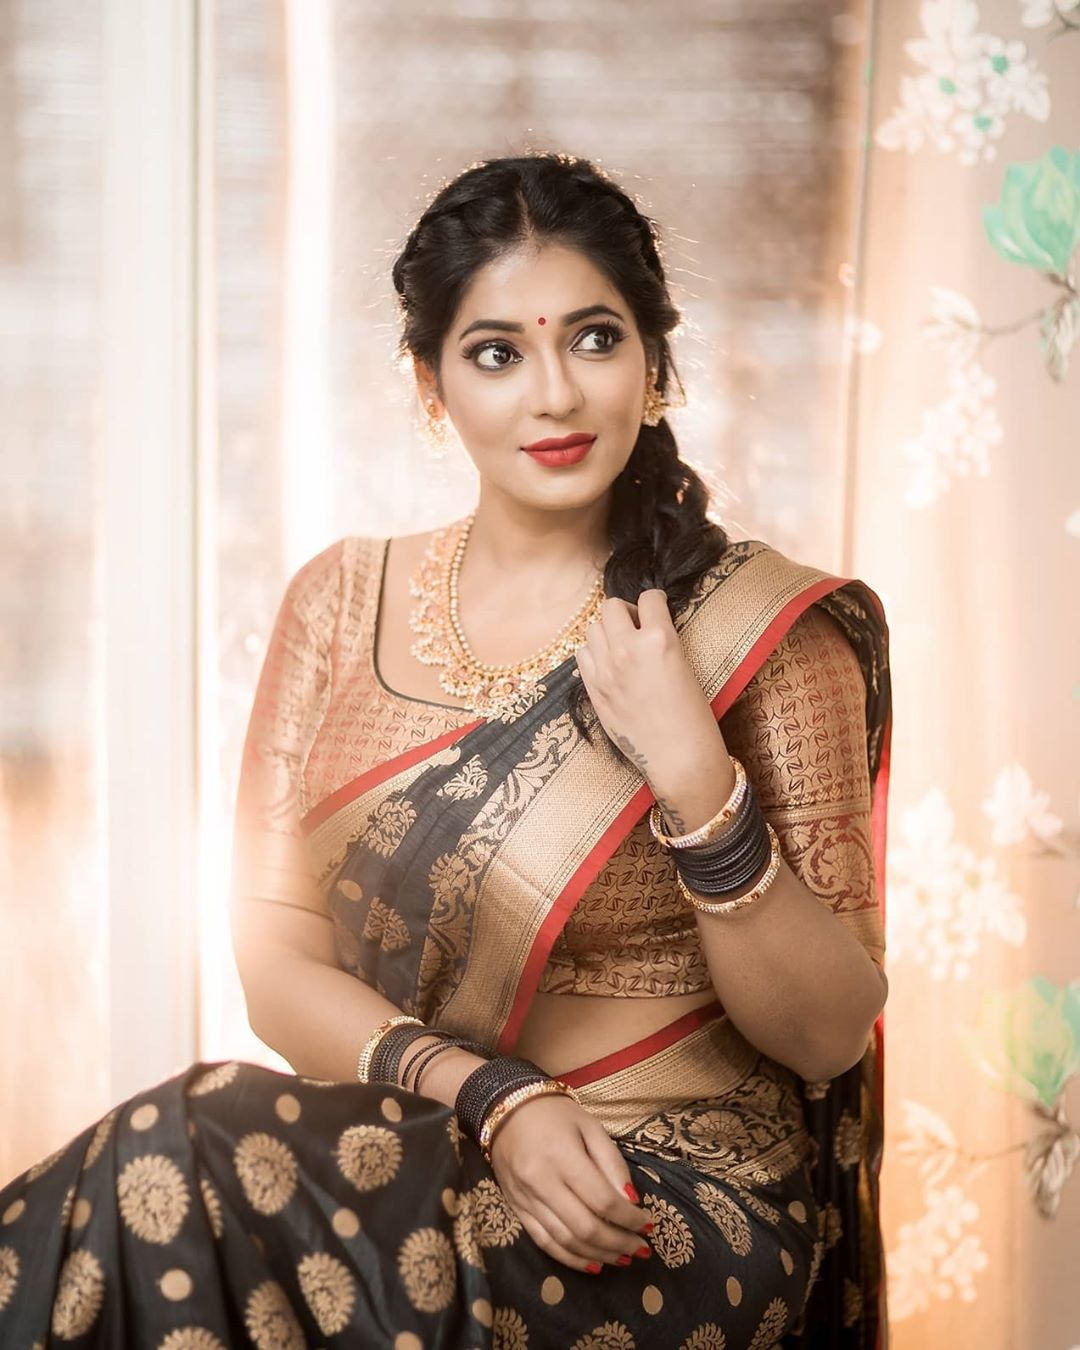 Reshma-Pasupuleti-latest-saree-photo-31